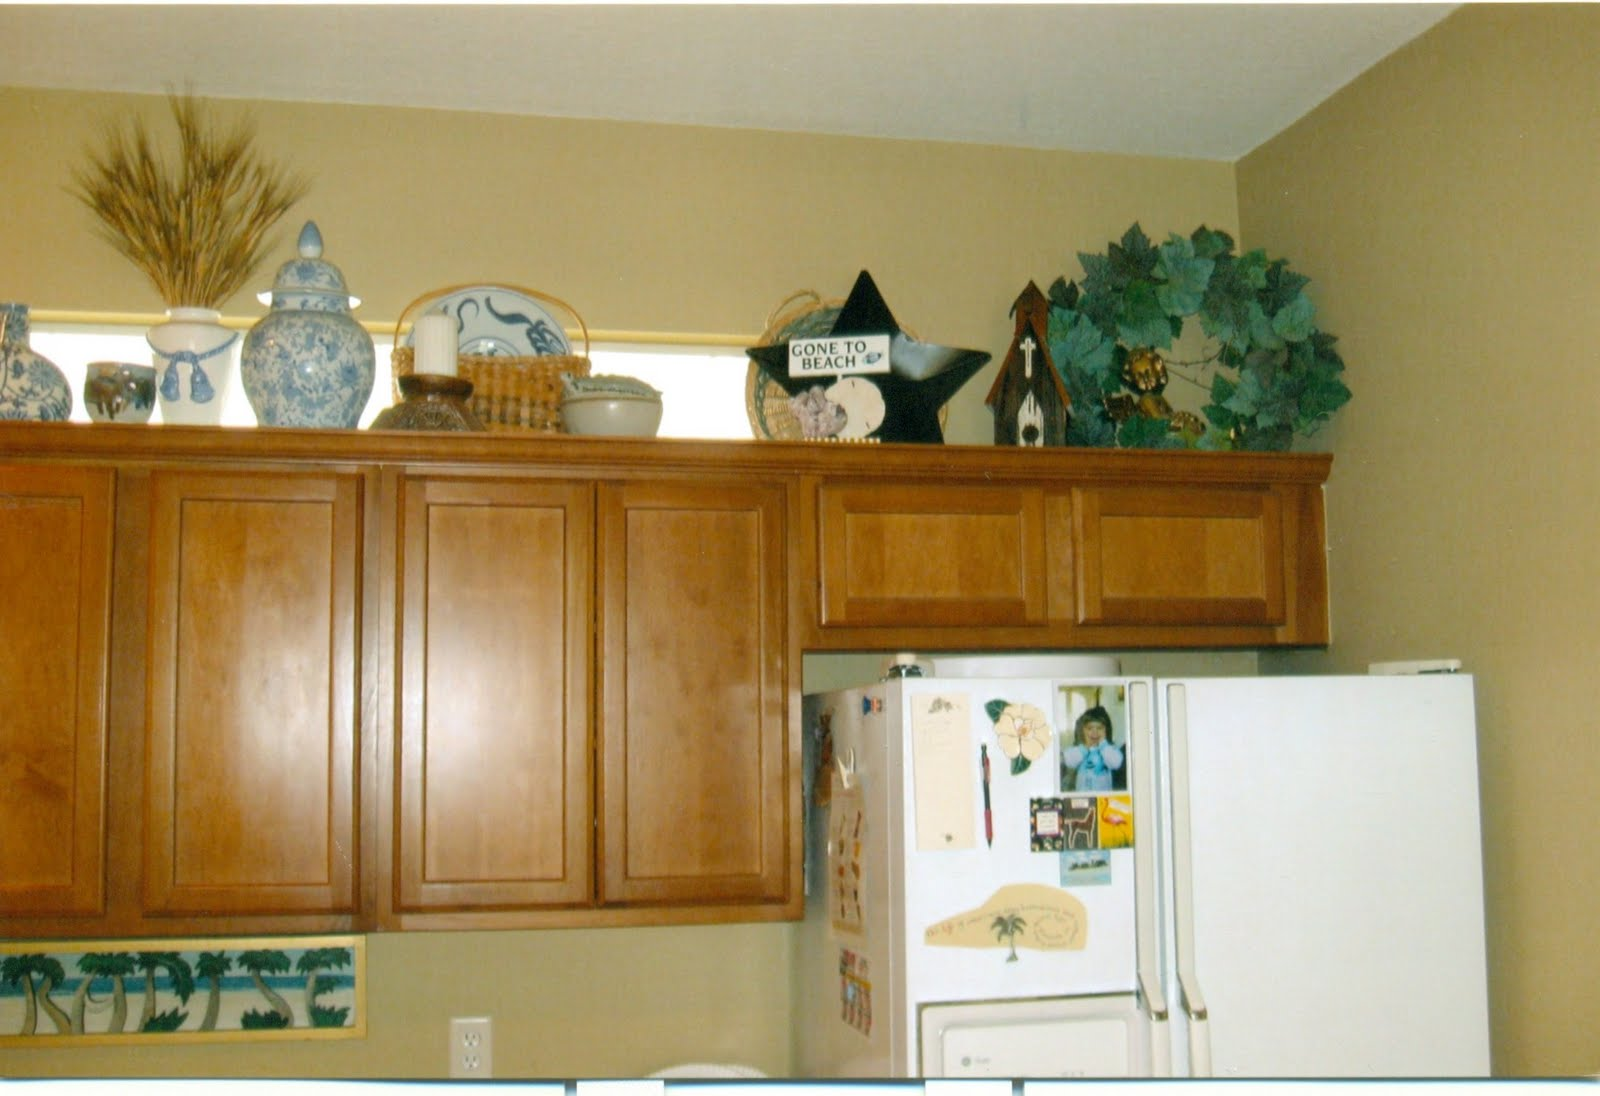 decorating above kitchen cabinets ideas afreakatheart